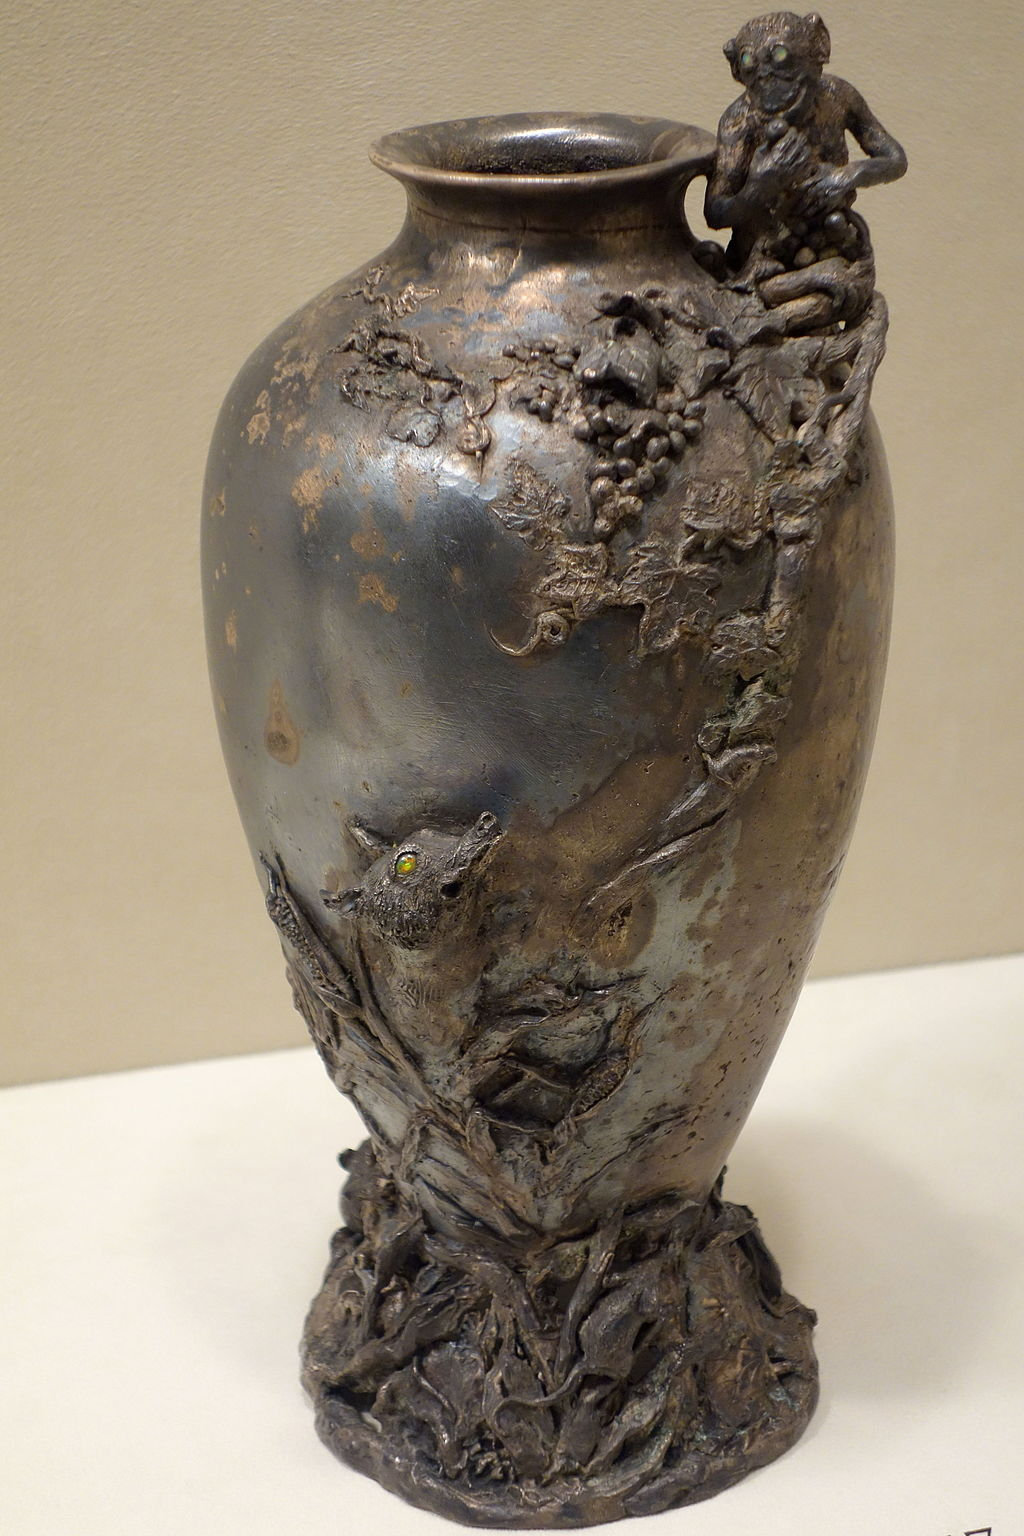 An intricate vase that is an example of the crafstmanship Marie Longworth Storer pioneered.